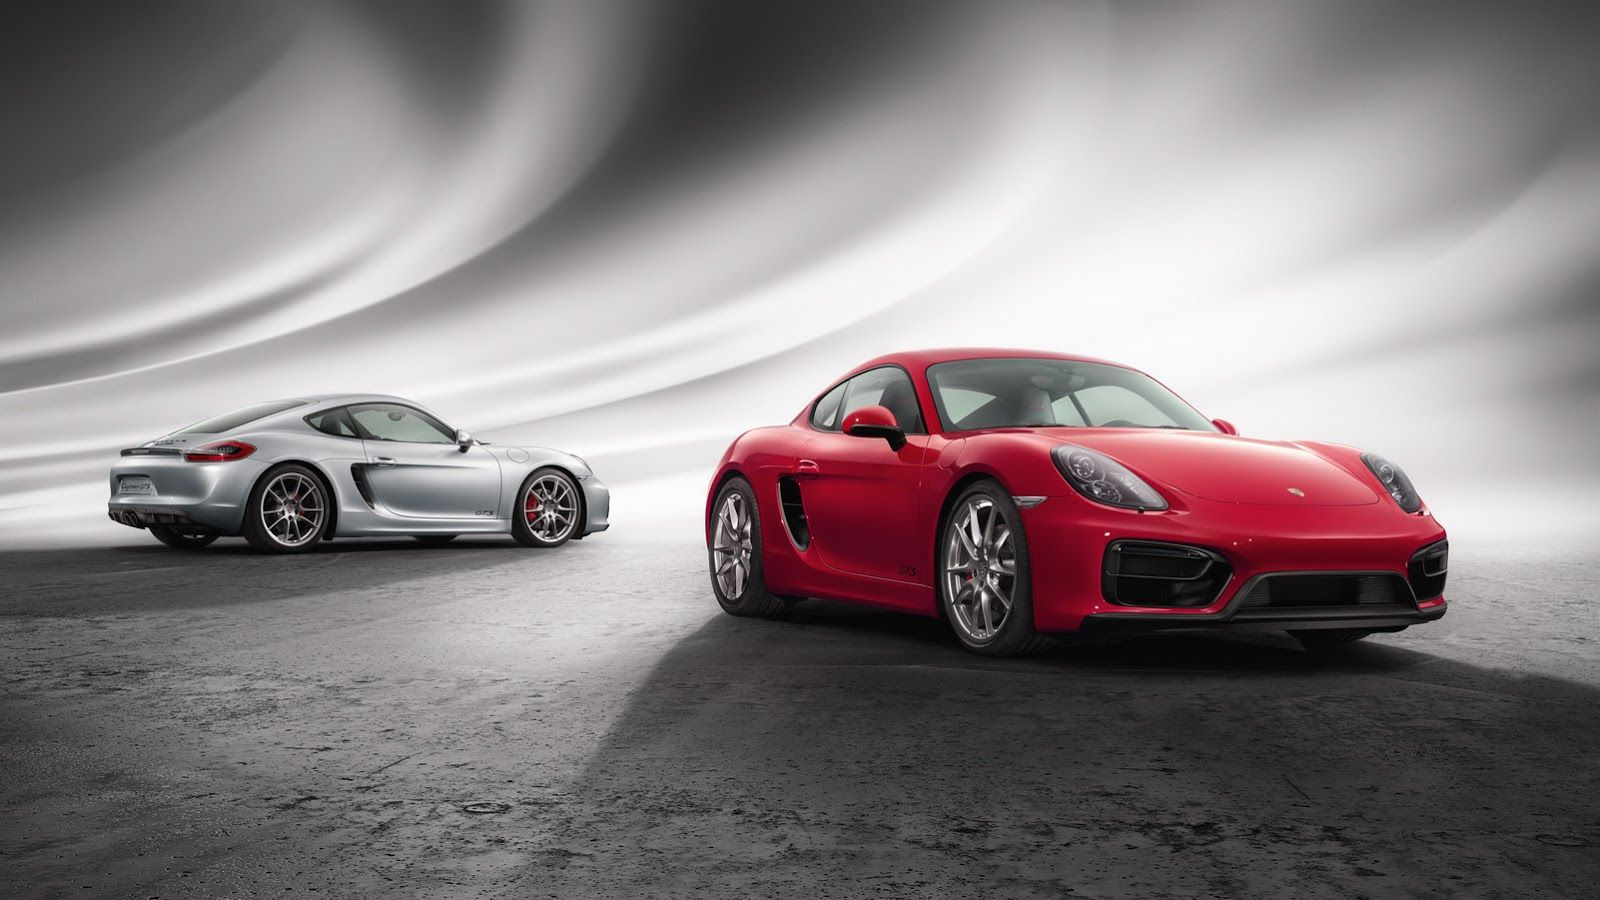 New Porsche Boxster And Cayman Gts In 62 Photos Plus U S Pricing Carscoops New Porsche Porsche Upcoming Cars